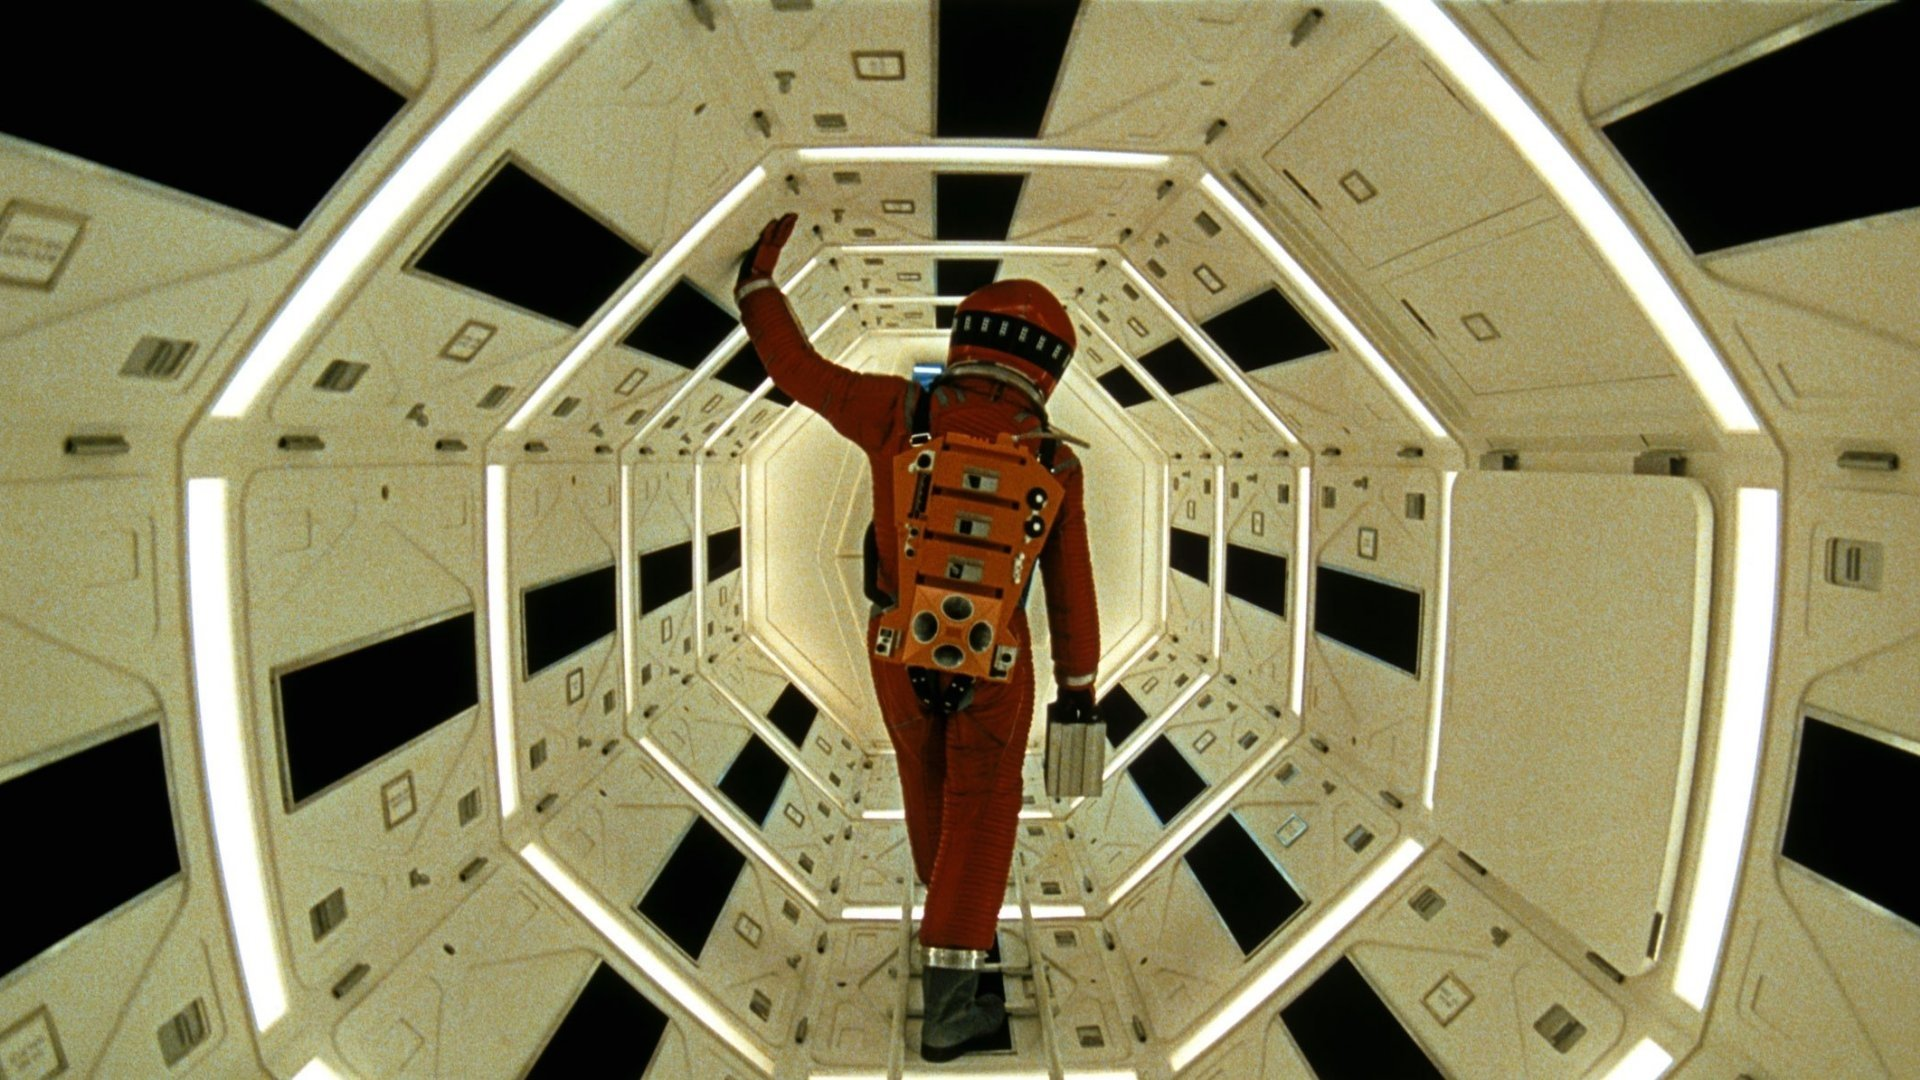 Free Download 2001 A Space Odyssey Wallpapers And Background